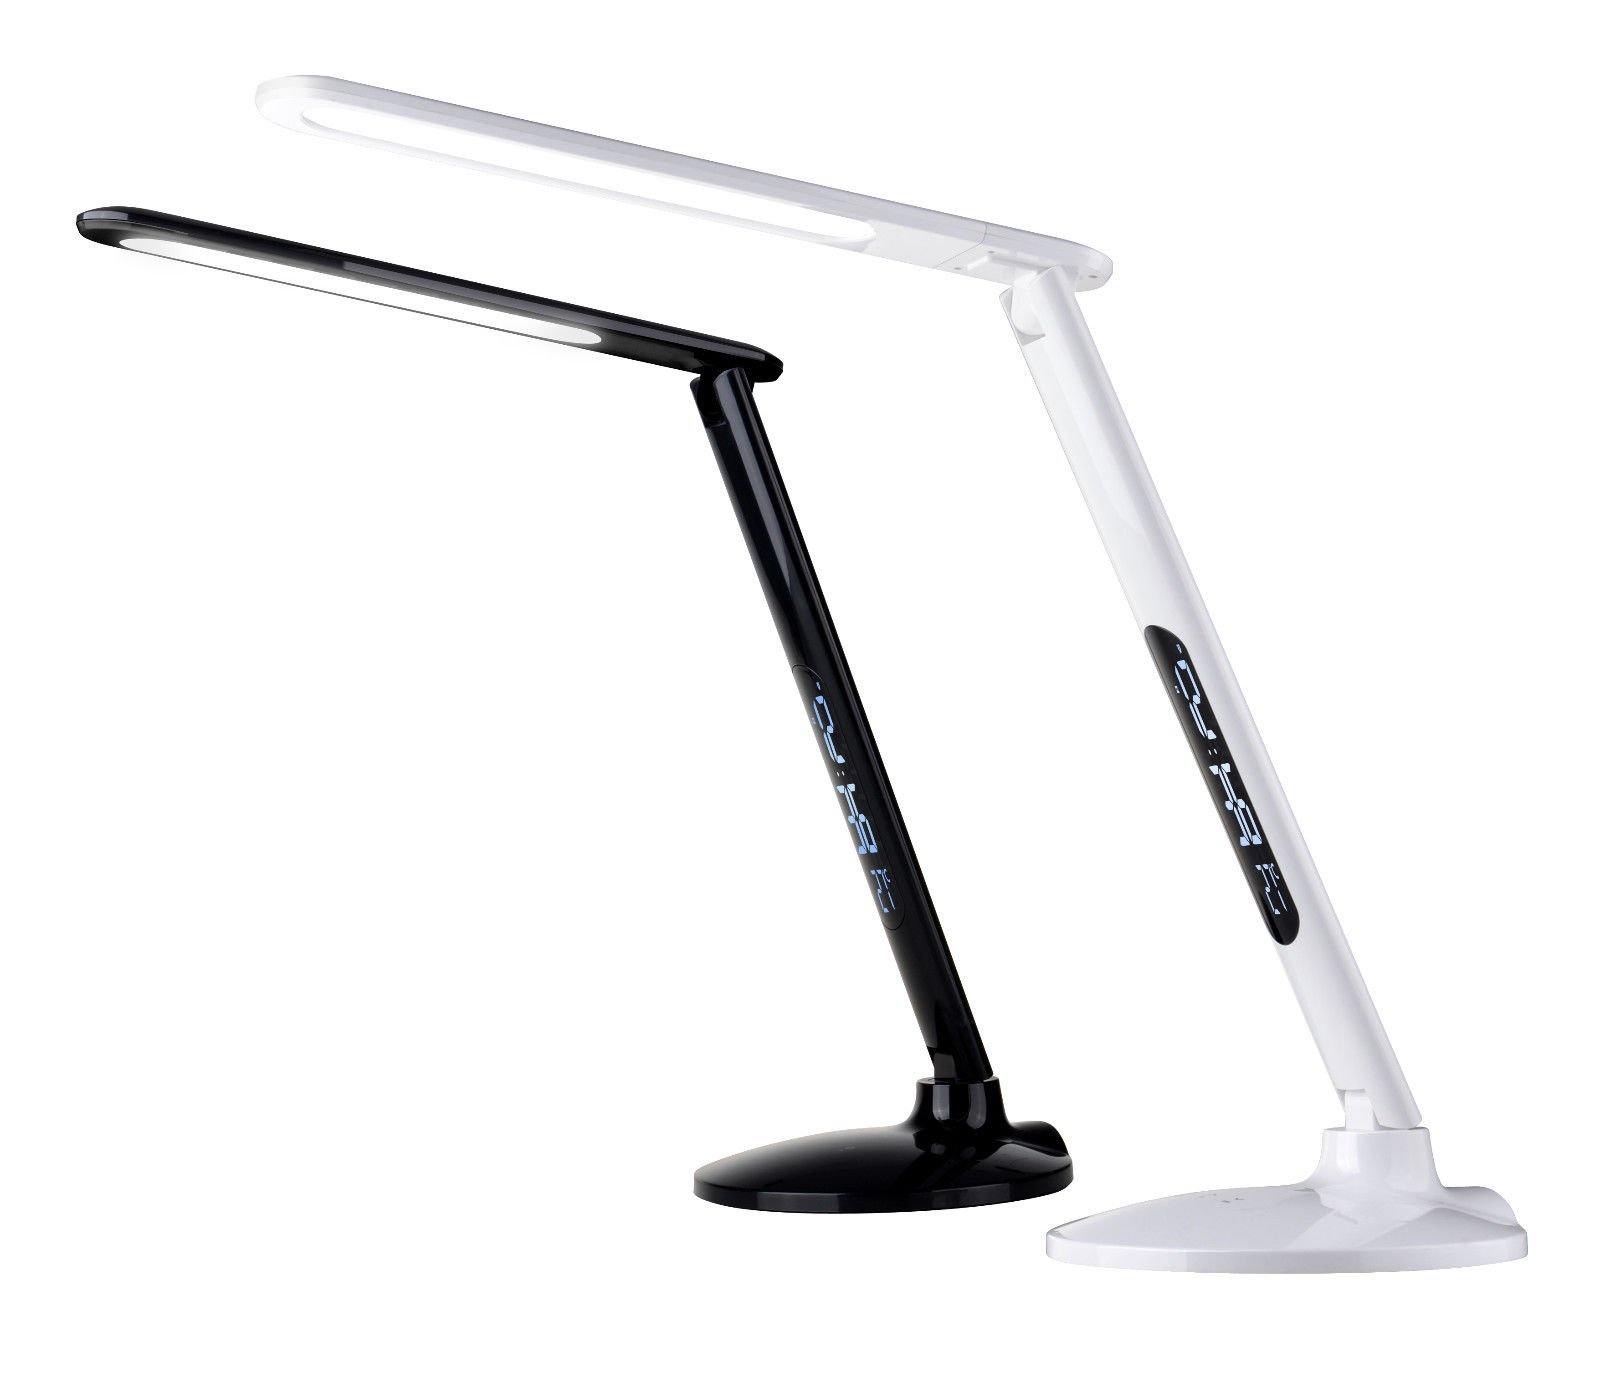 USA Star 10 LED USB Light Flexible Desk Table Task Lamp for Book Study Reading Pc Laptop by USA Star